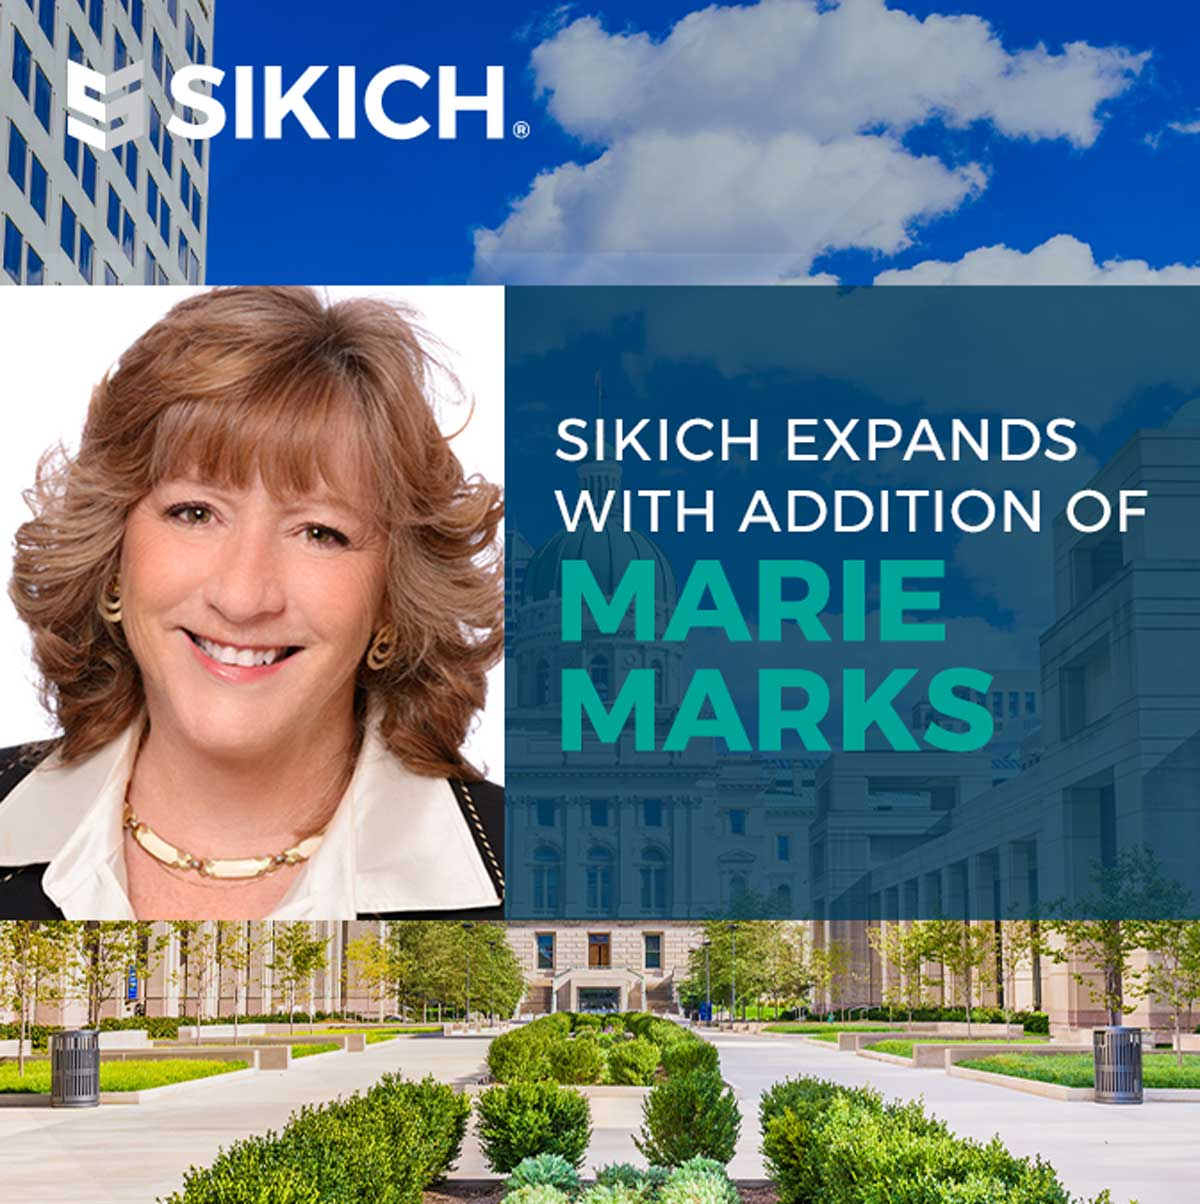 Marie Marks press release image